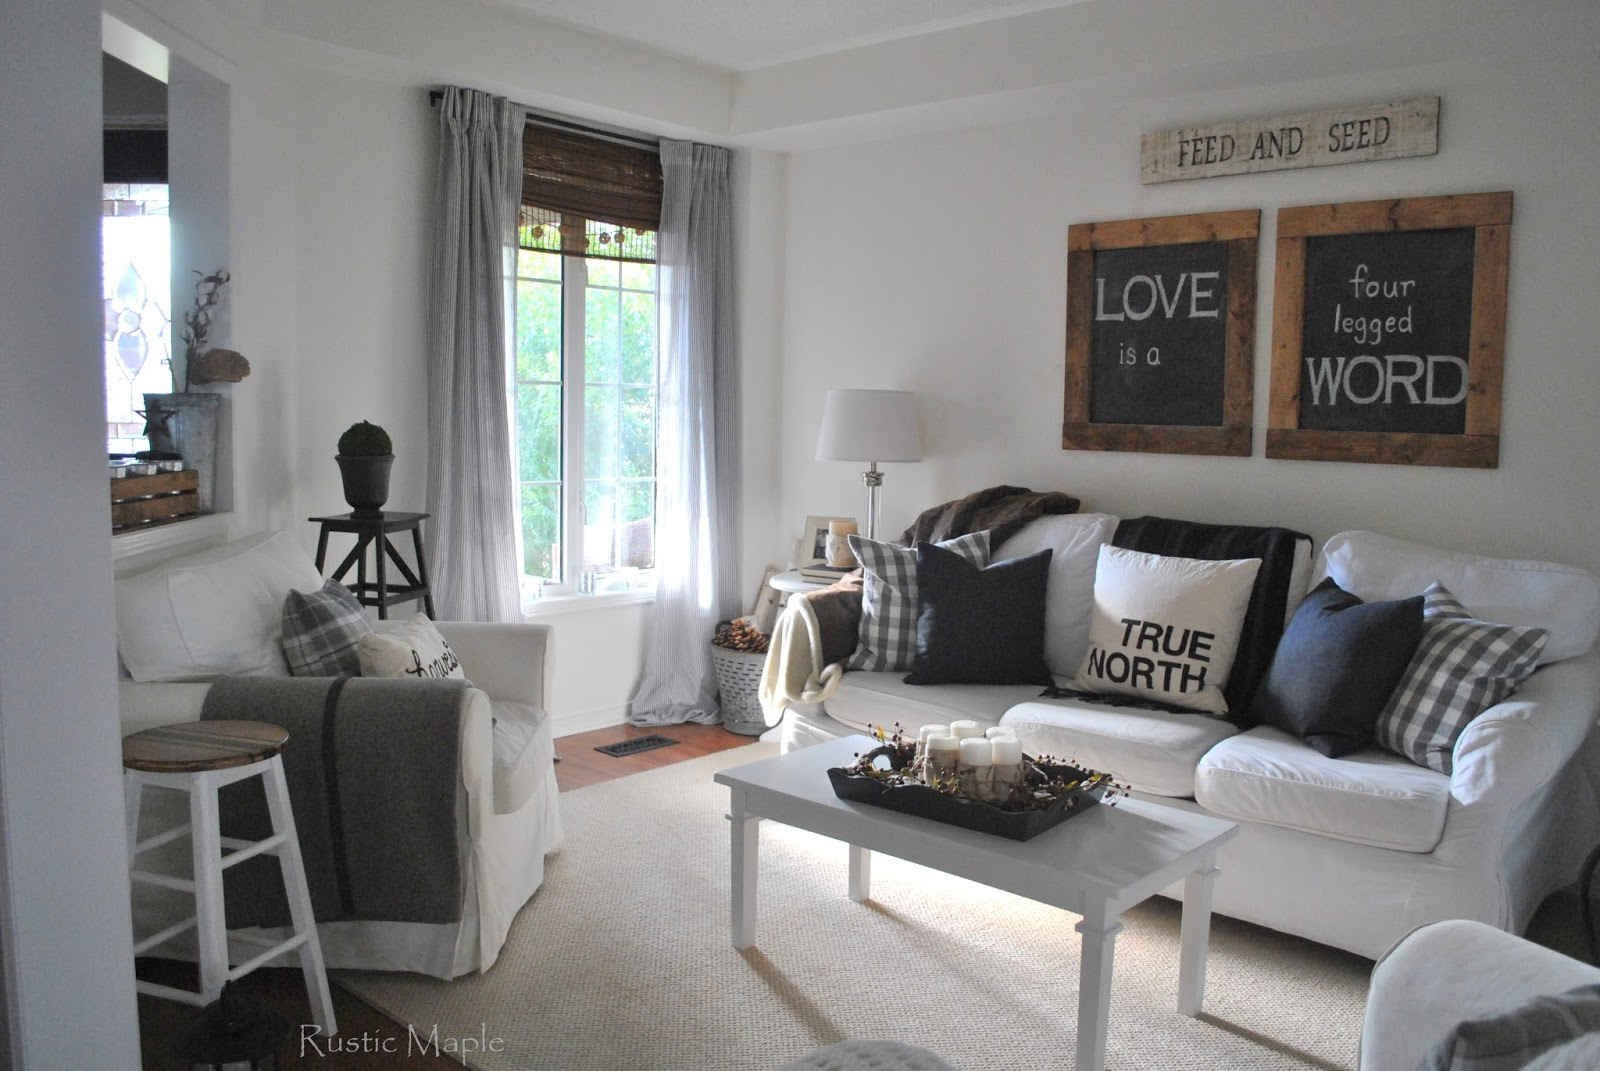 Best Of The Week 9 Instagrammable Living Rooms: Rustic Maple: Our Neutral Fall Living Room Tour